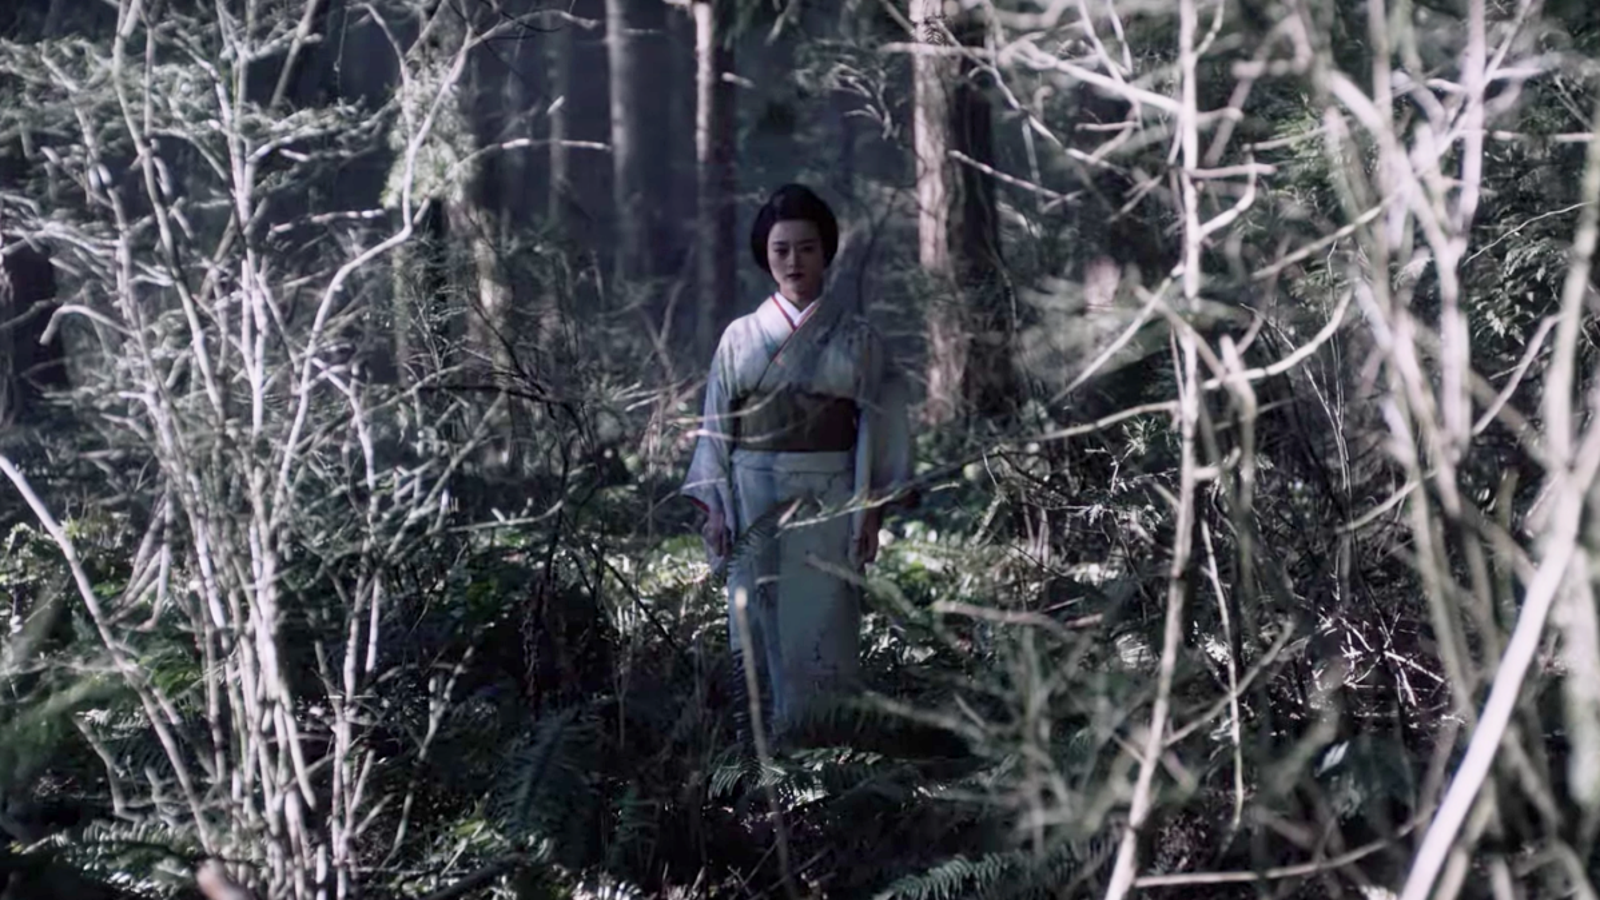 AMC's The Terror Haunts a Japanese American Internment Camp in a Pertinent New Trailer